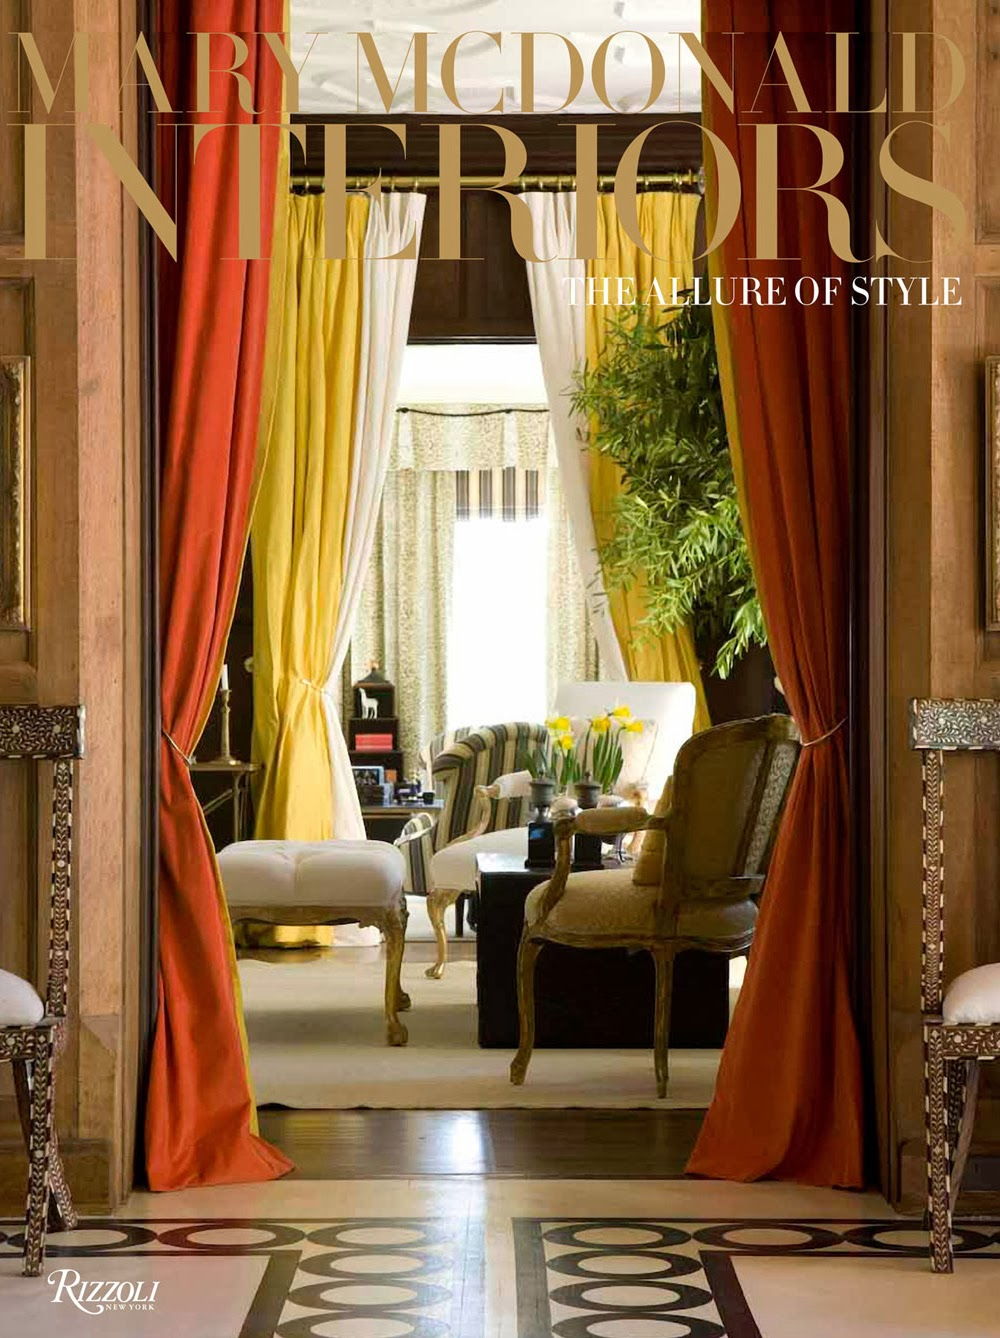 Color Outside The Lines Mary Mcdonald Interiors The